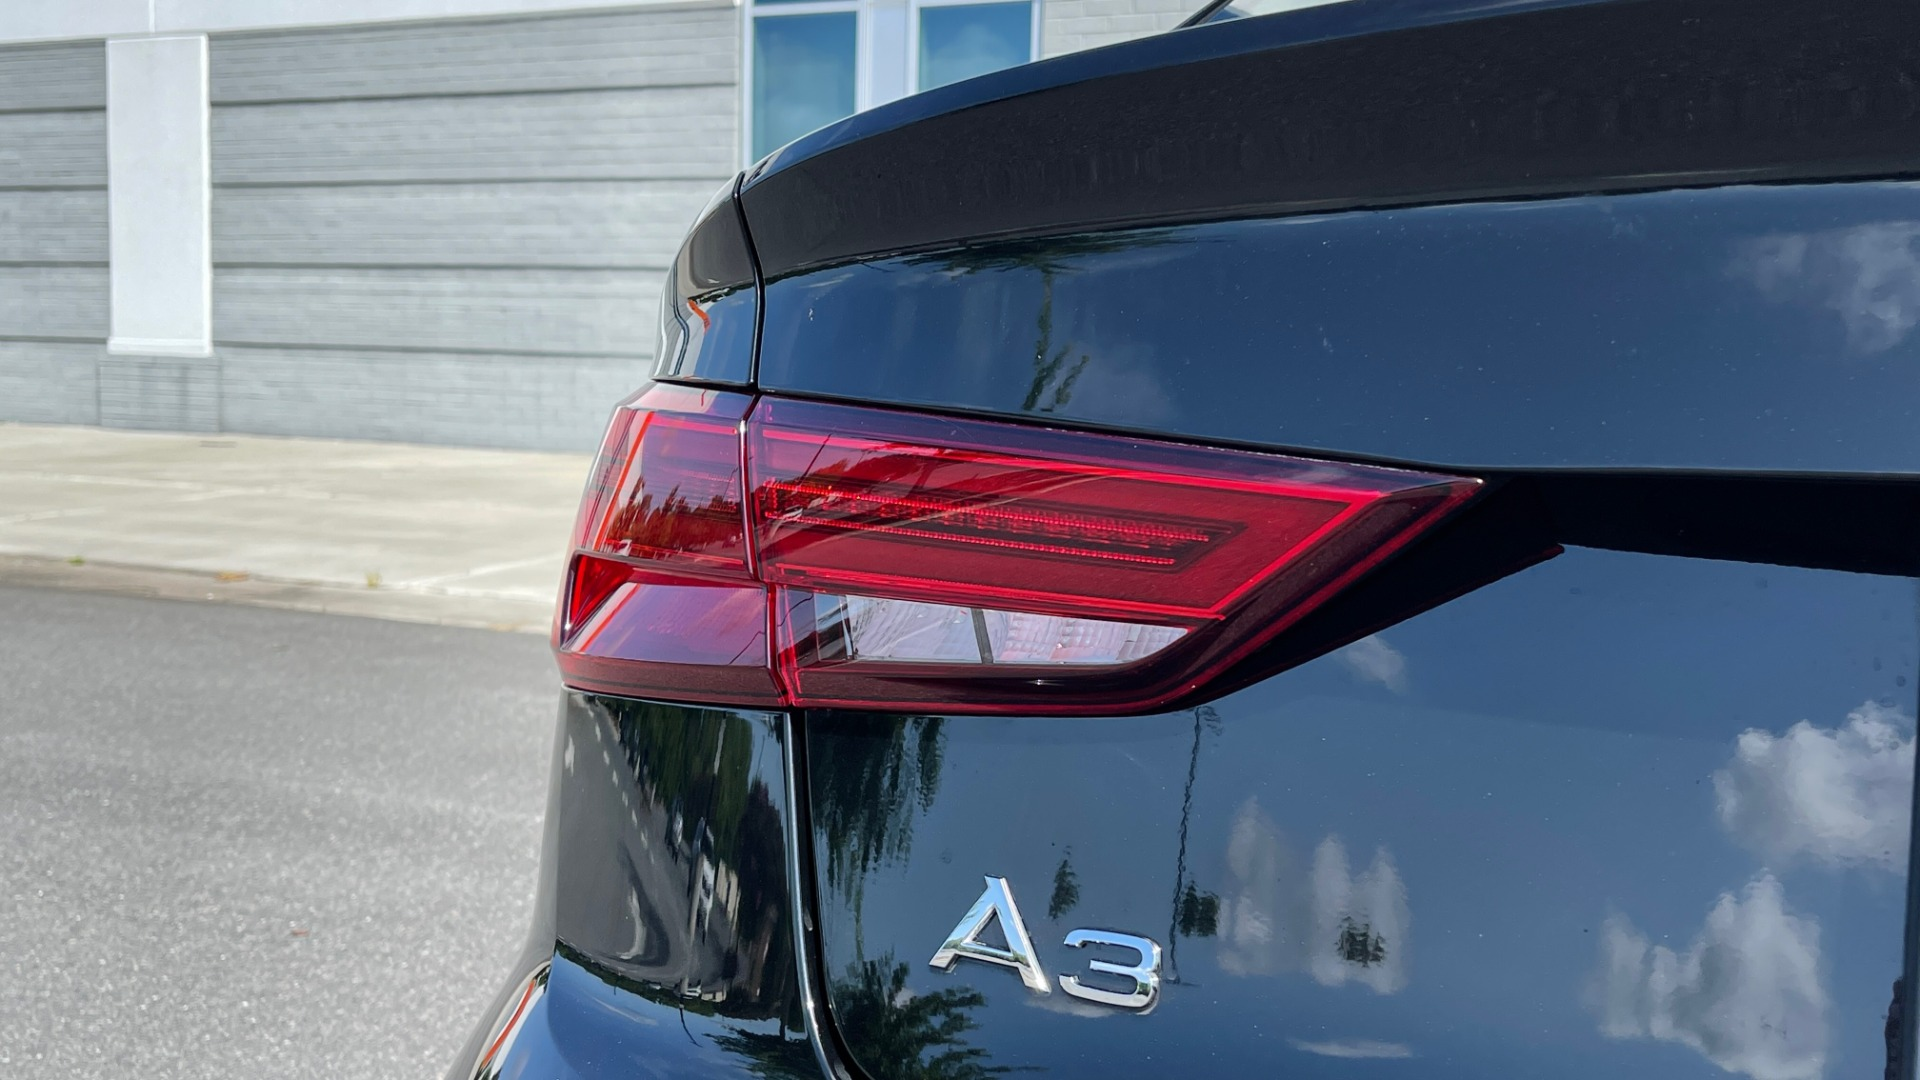 Used 2018 Audi A3 SEDAN PREMIUM PLUS / S-LINE / PANO-ROOF / PARK SYS / REARVIEW for sale $31,795 at Formula Imports in Charlotte NC 28227 18